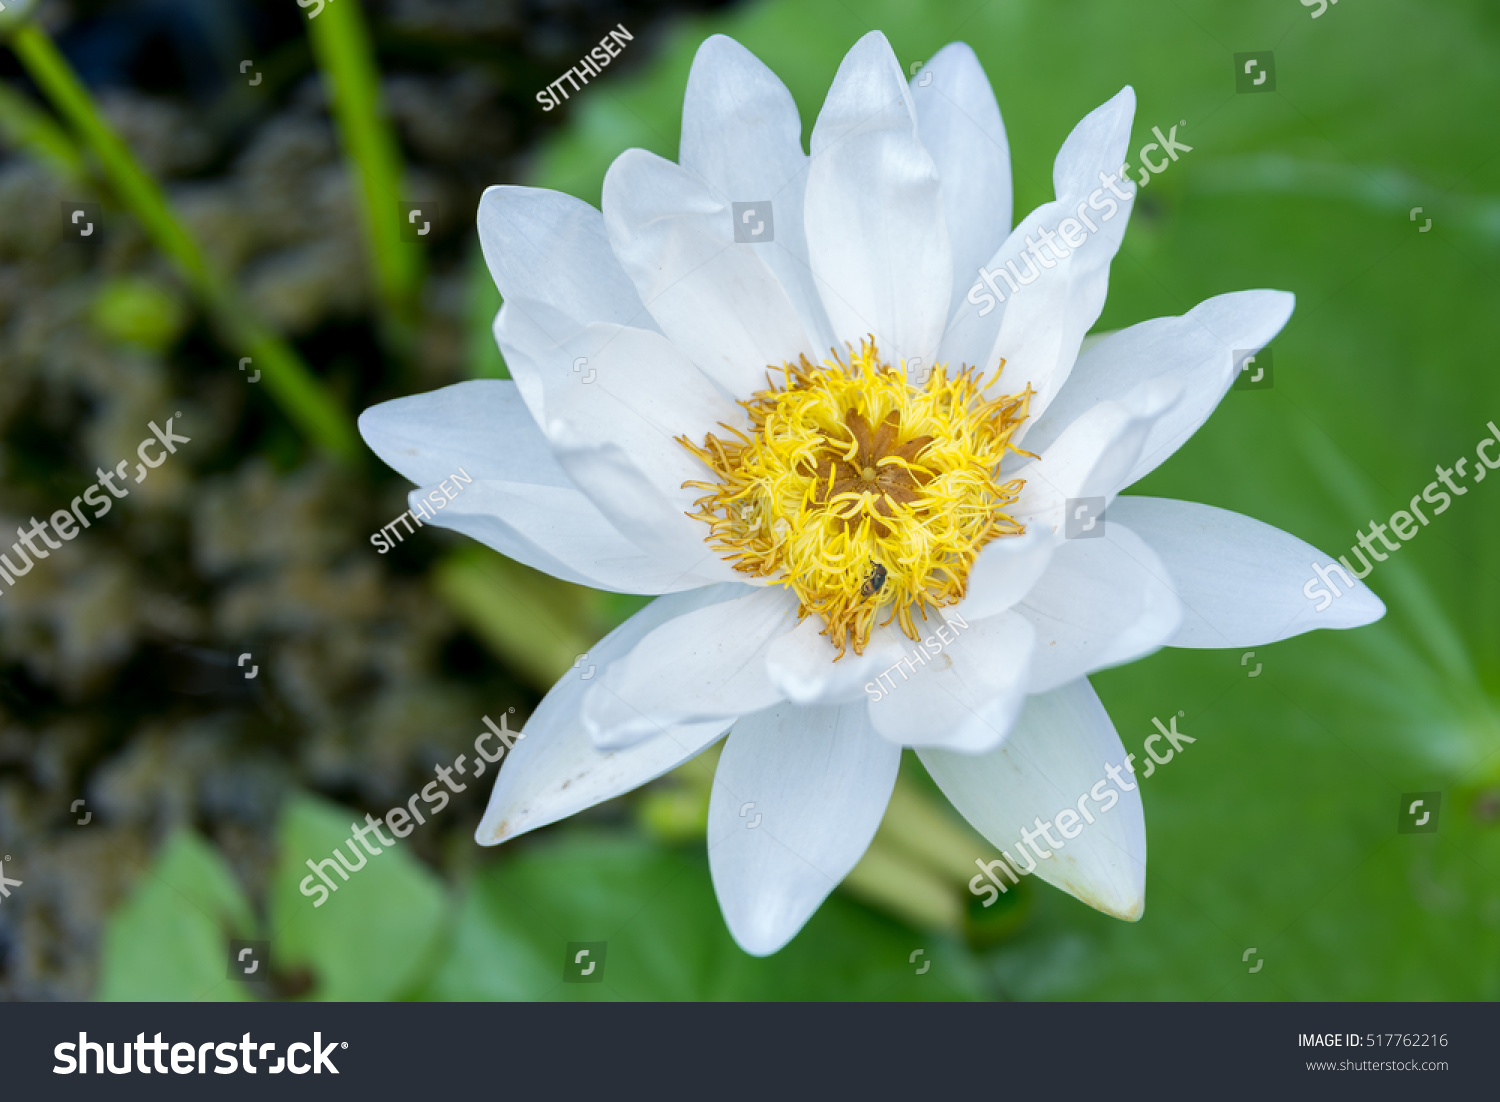 Top view a beautiful white lotus flower in pond ez canvas id 517762216 izmirmasajfo